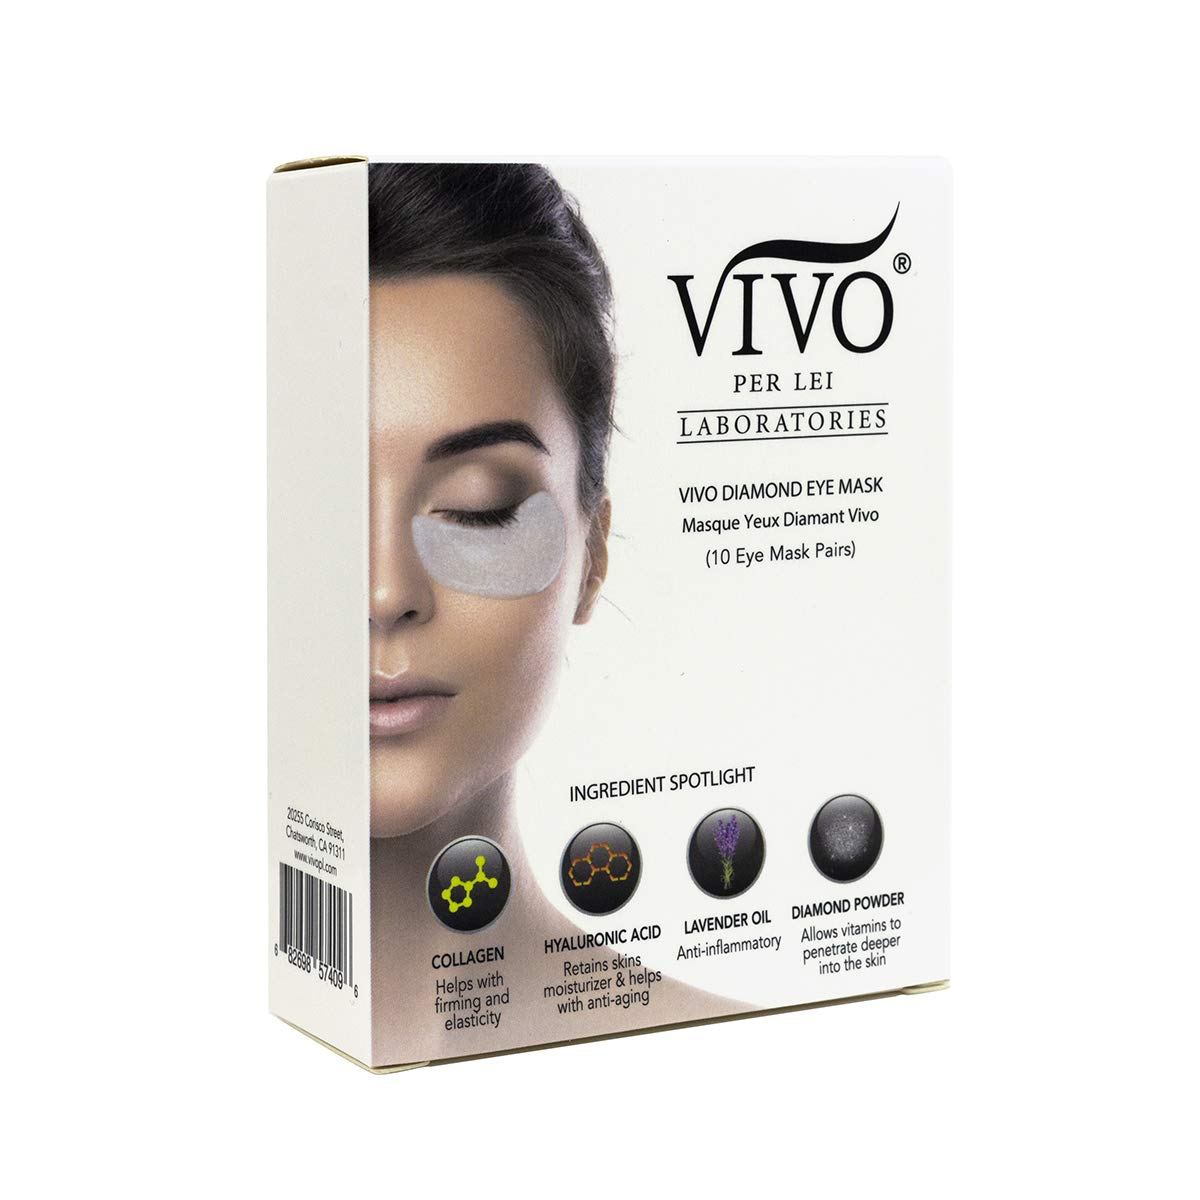 Vivo Per Lei Diamond Under Eye Patches | Collagen Eye Mask & Dark Circles Mask | Let Your Eyes Talk with this Anti Aging Under Eyes Bag Treatment | Collagen Eye Patch with Diamond Powder | Set of 10 by Vivo Per Lei (Image #8)